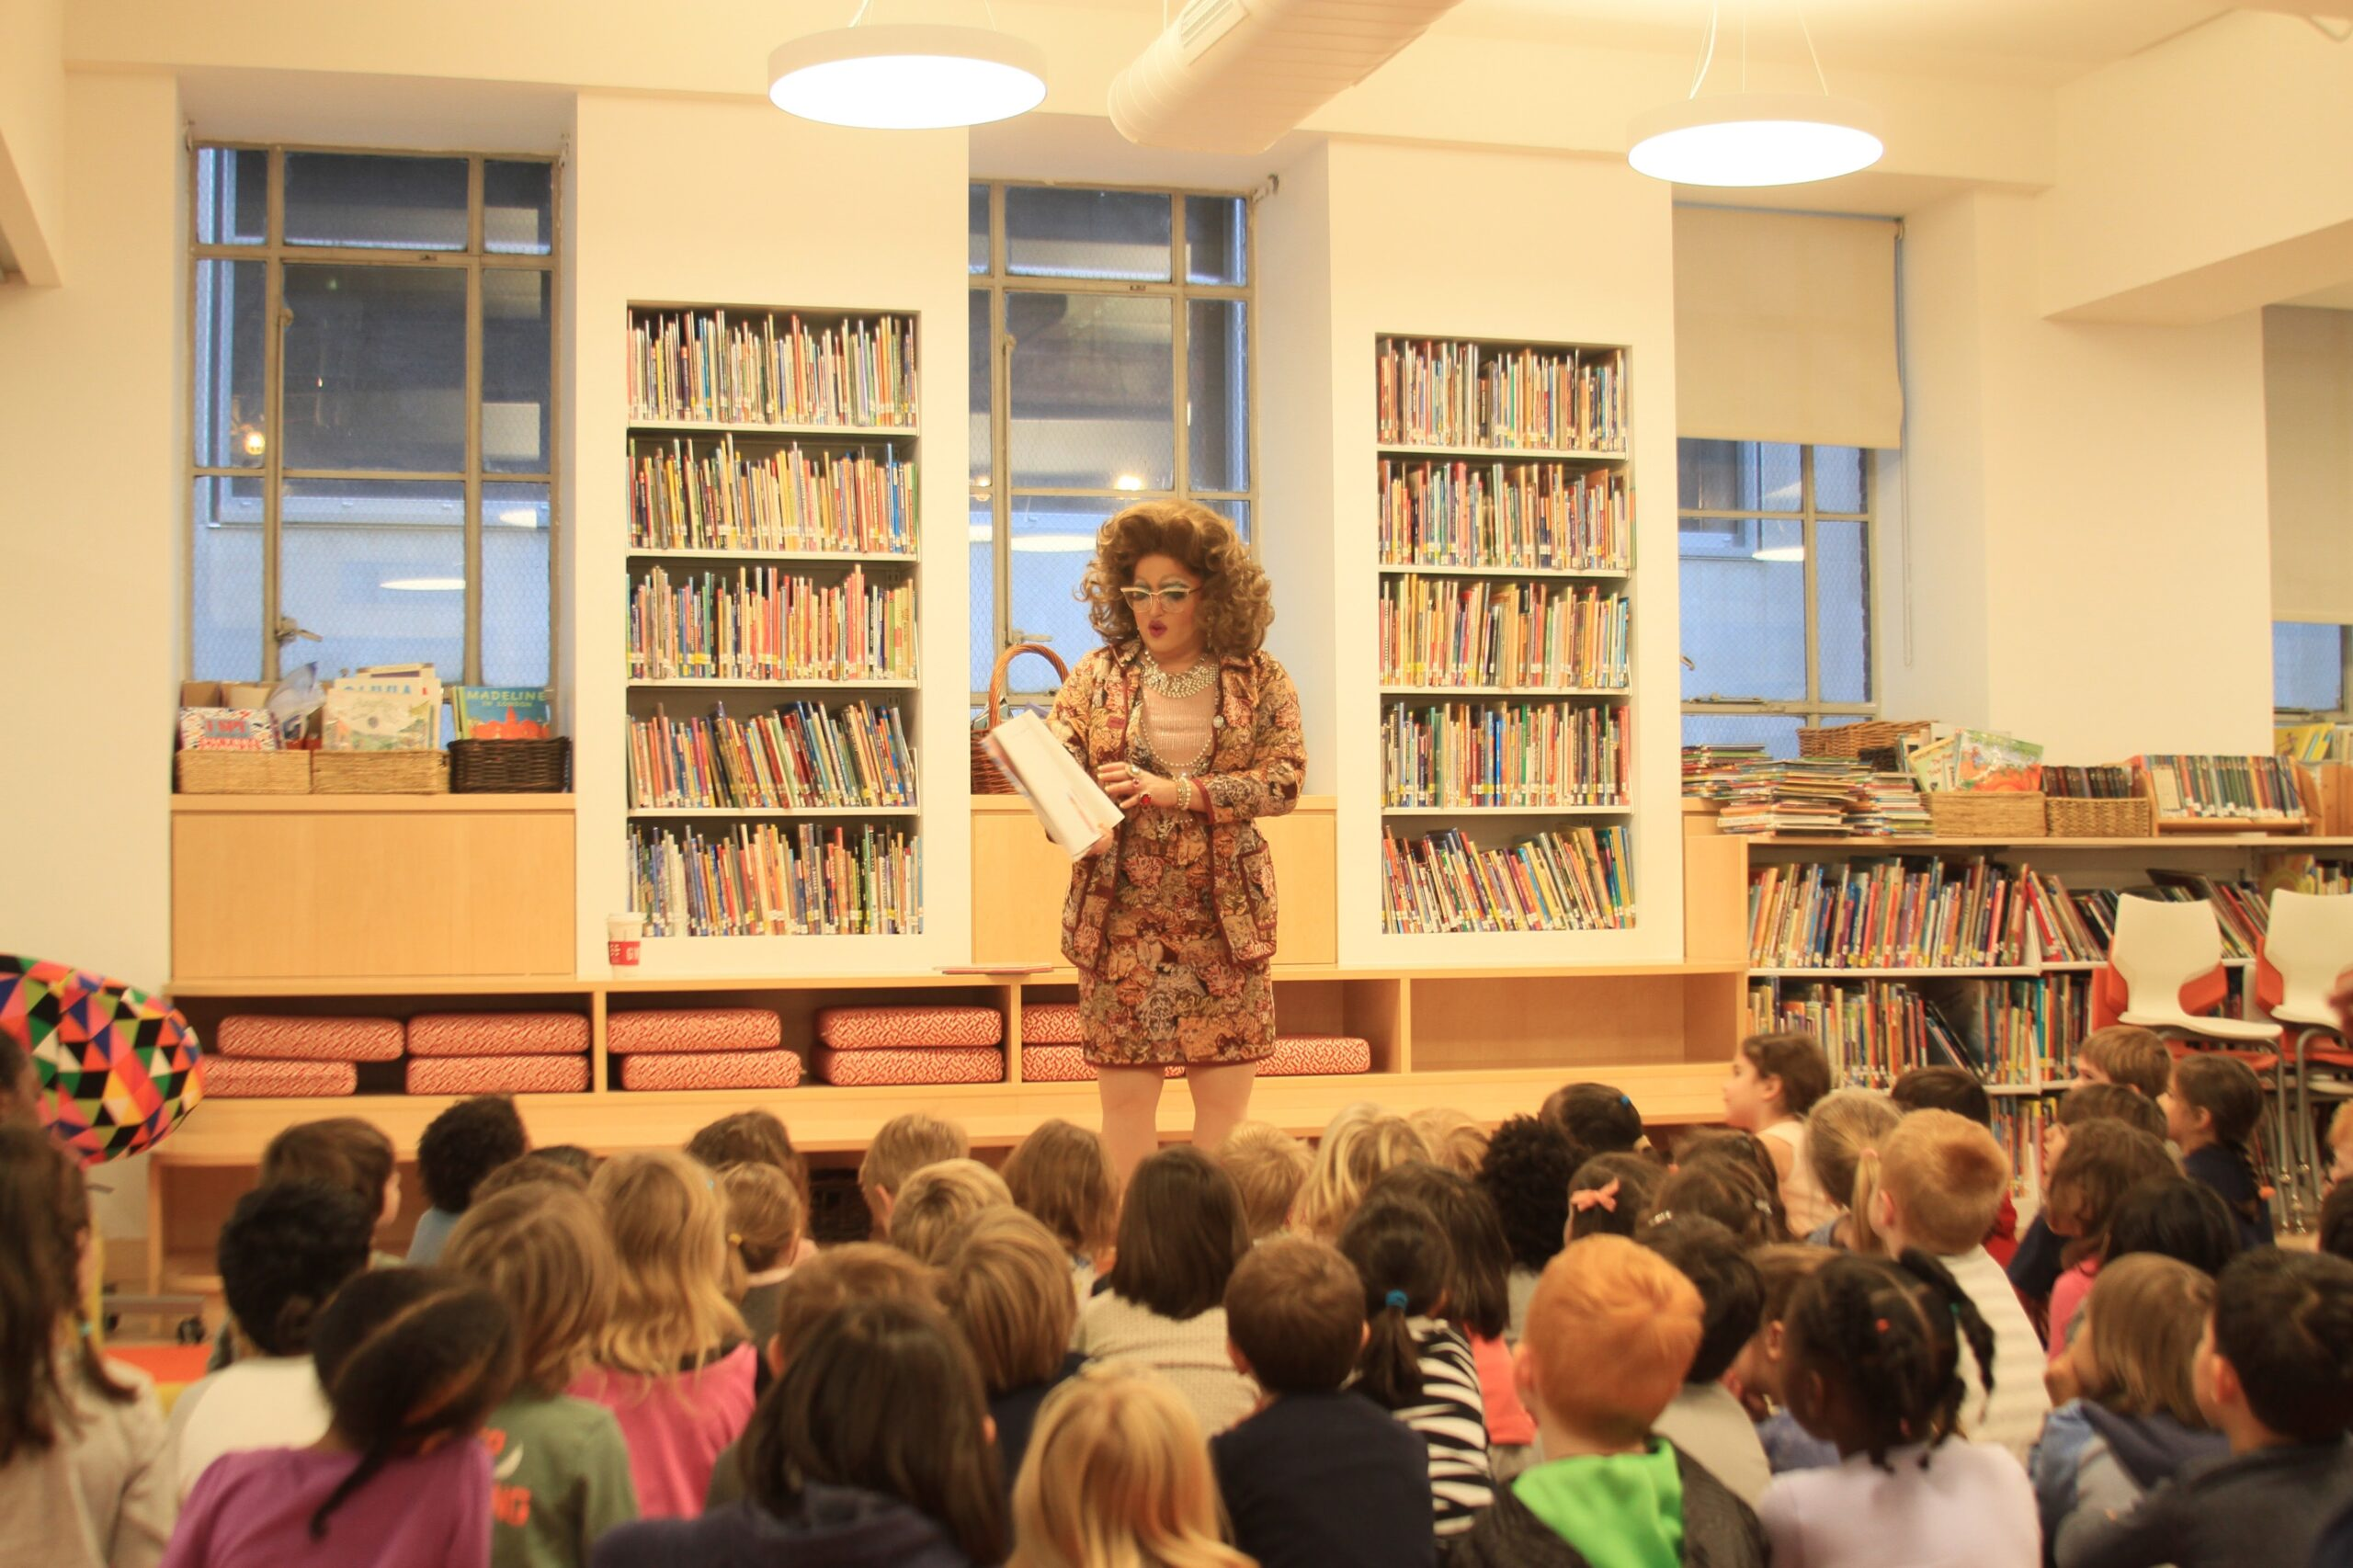 Drag Queen Story Hour events have taken place around the world at libraries, schools, museums, summer camps, and other community spaces.